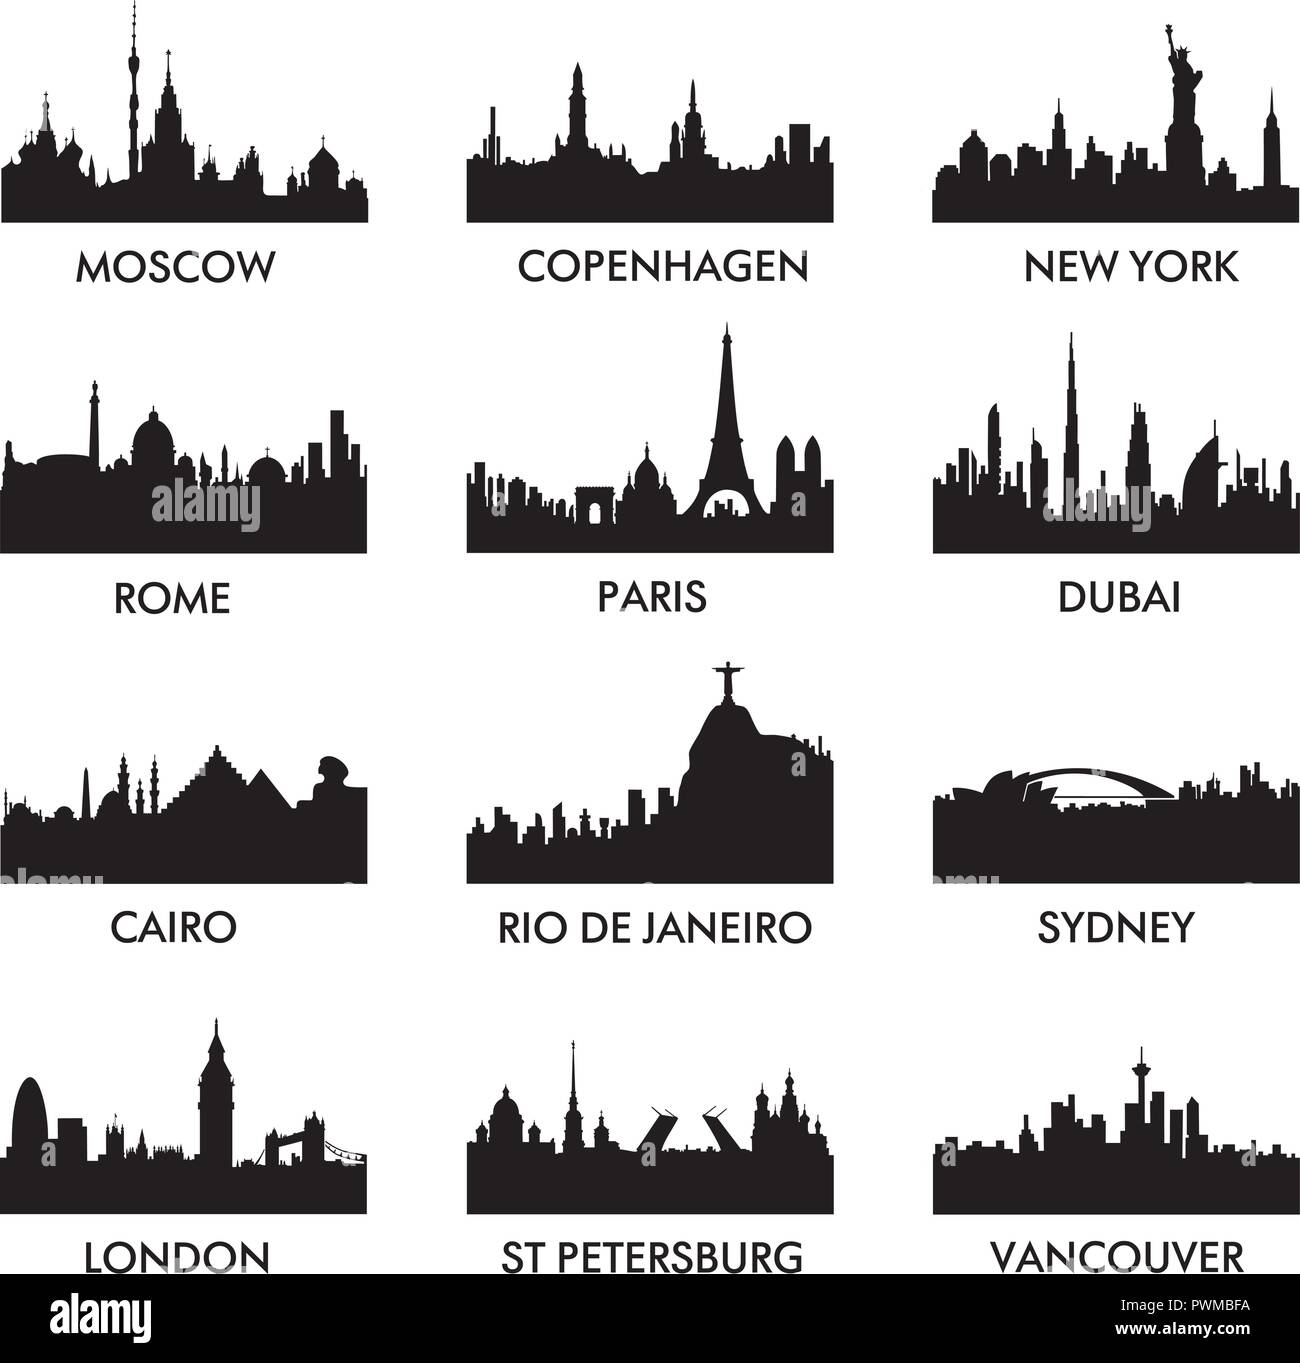 City Silhouette Vector Illustration Stock Vector Image Art Alamy 482 best city silhouette free brush downloads from the brusheezy community. https www alamy com city silhouette vector illustration image222338910 html